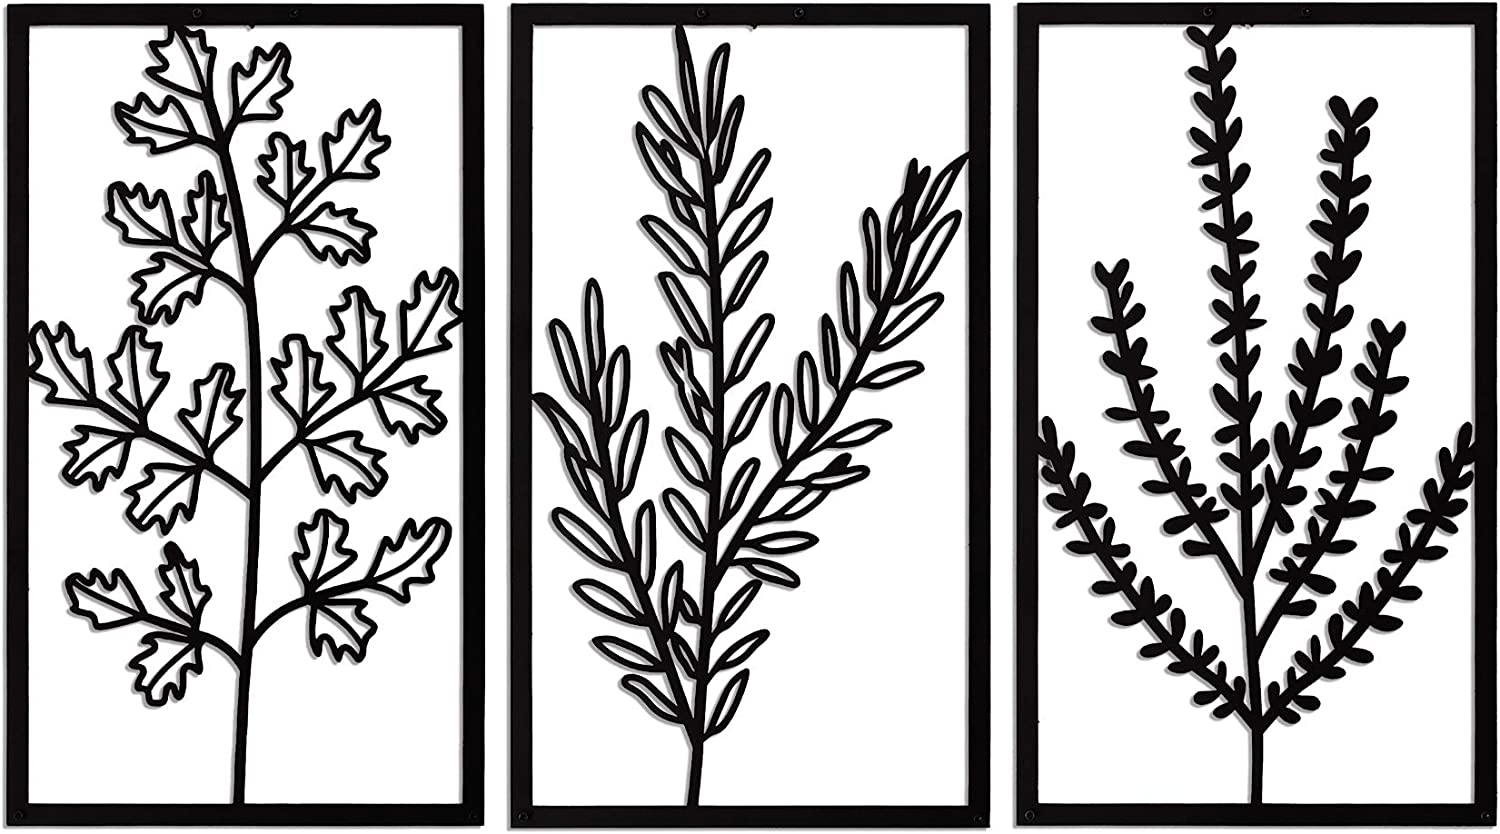 SOFT ART HOME Modern Wall Art Vetch Bouquet, Metal Wall Decoration 3 Pieces for Home. Vase Vetch Interior Decor for Office and Living Room, Botanical and Natural Themed House Warming Gift.